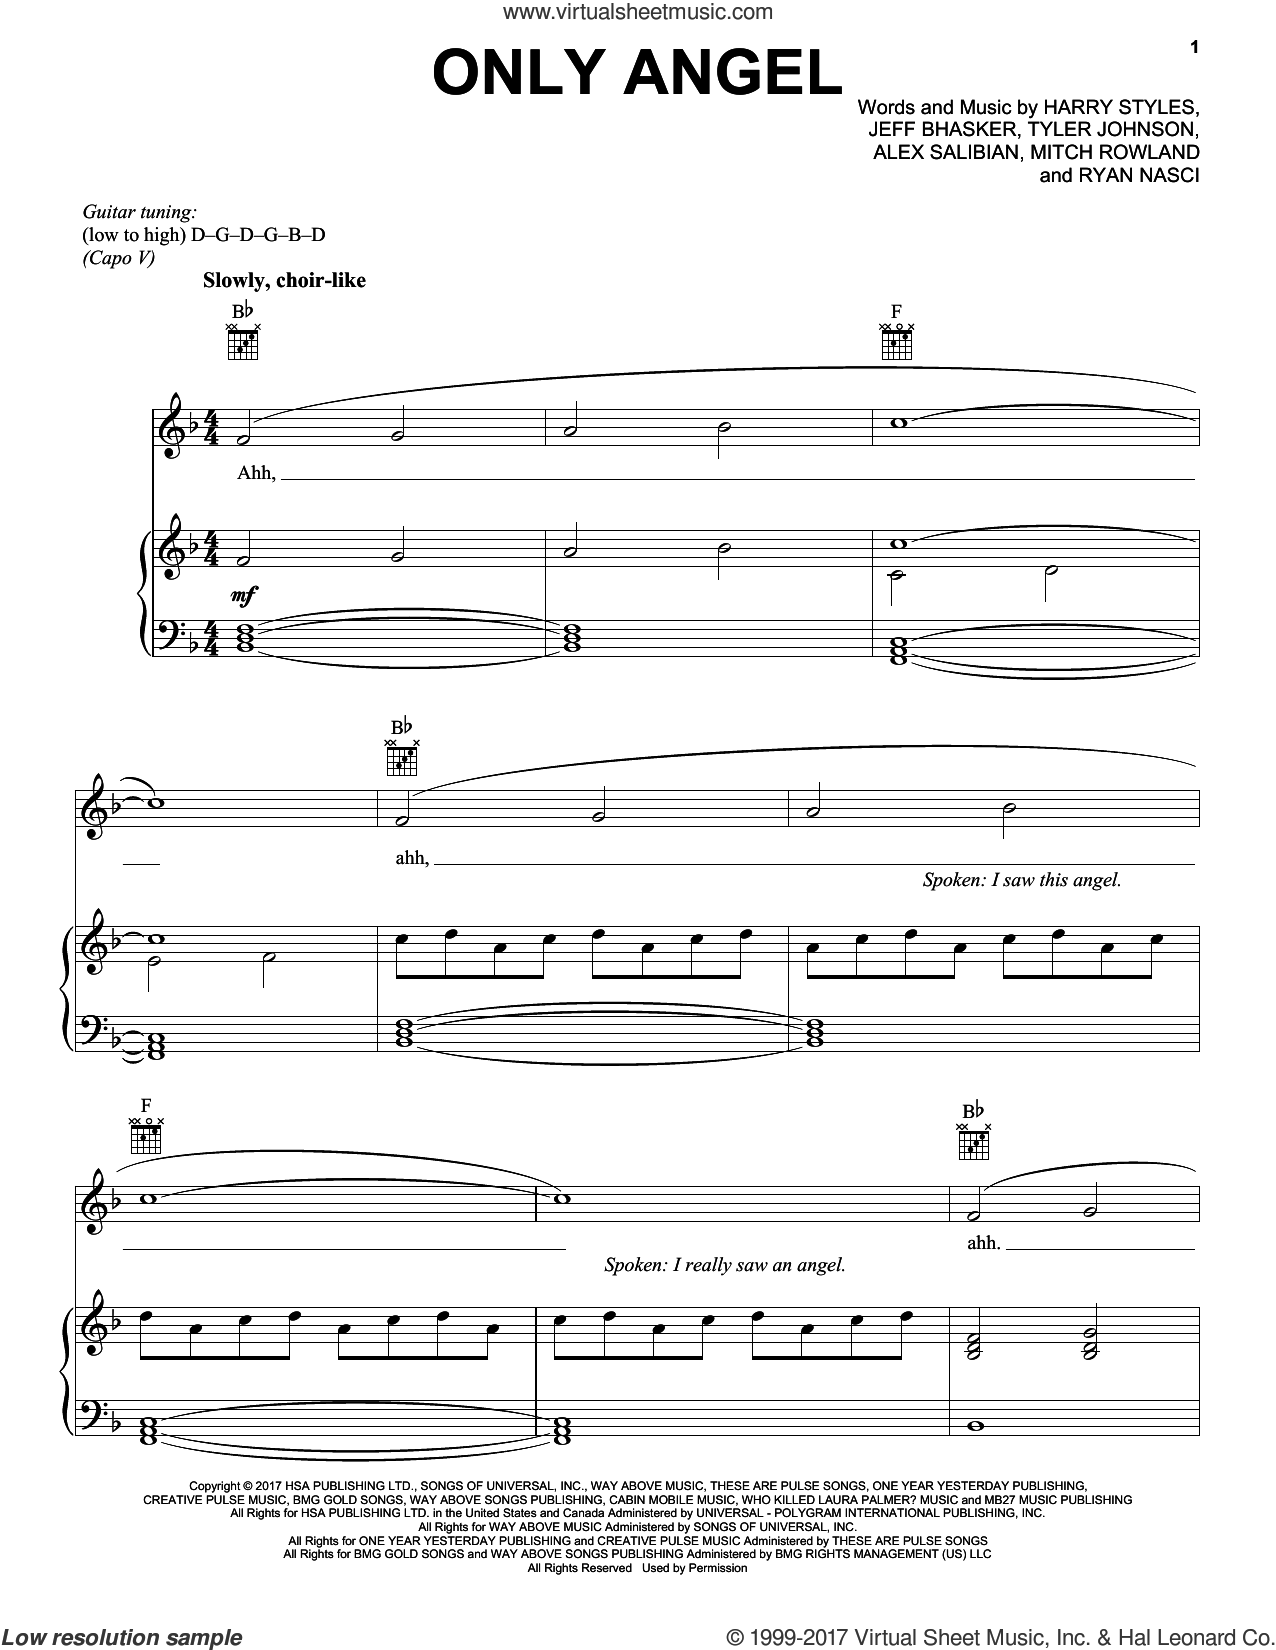 Only Angel sheet music for voice, piano or guitar by Harry Styles, Alex Salibian, Jeff Bhasker, Mitch Rowland, Ryan Nasci and Tyler Johnson, intermediate skill level